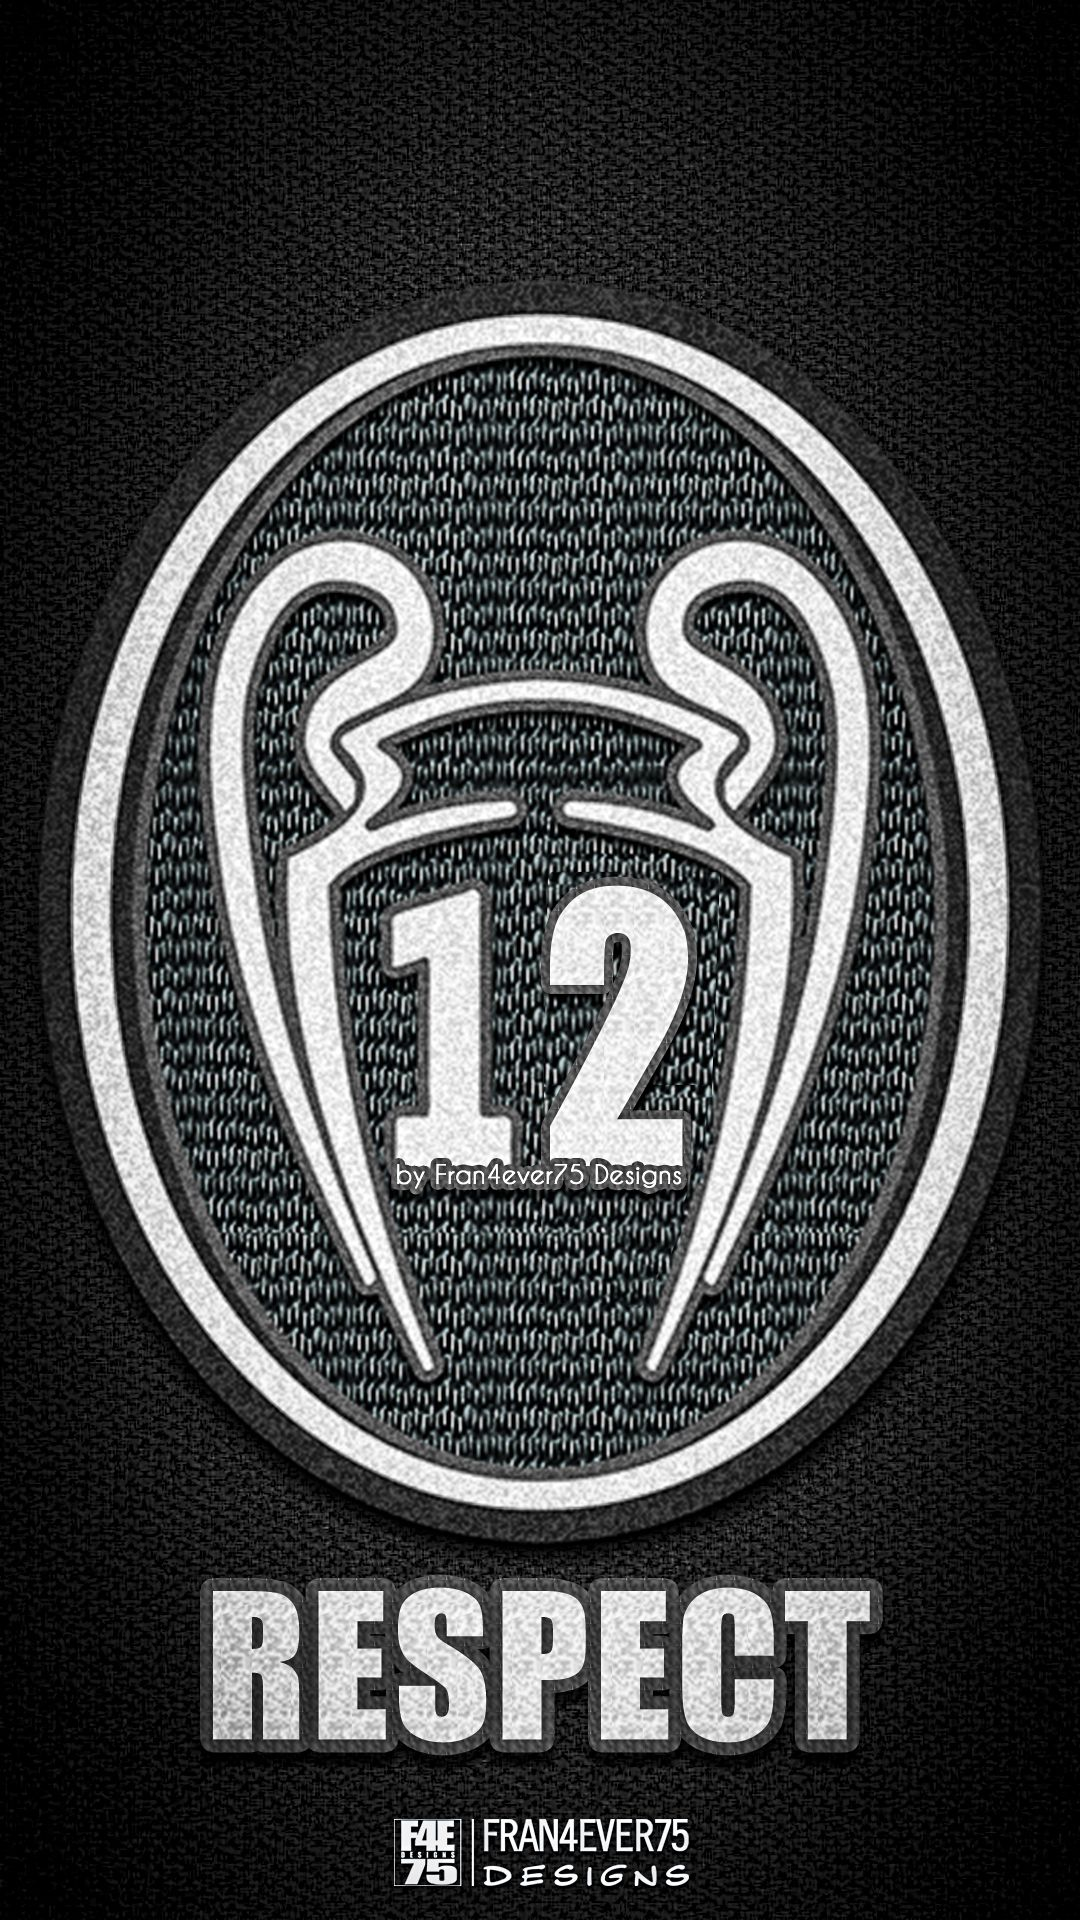 Respect to the champions real madrid cf pinterest respect respect to the champions altavistaventures Gallery